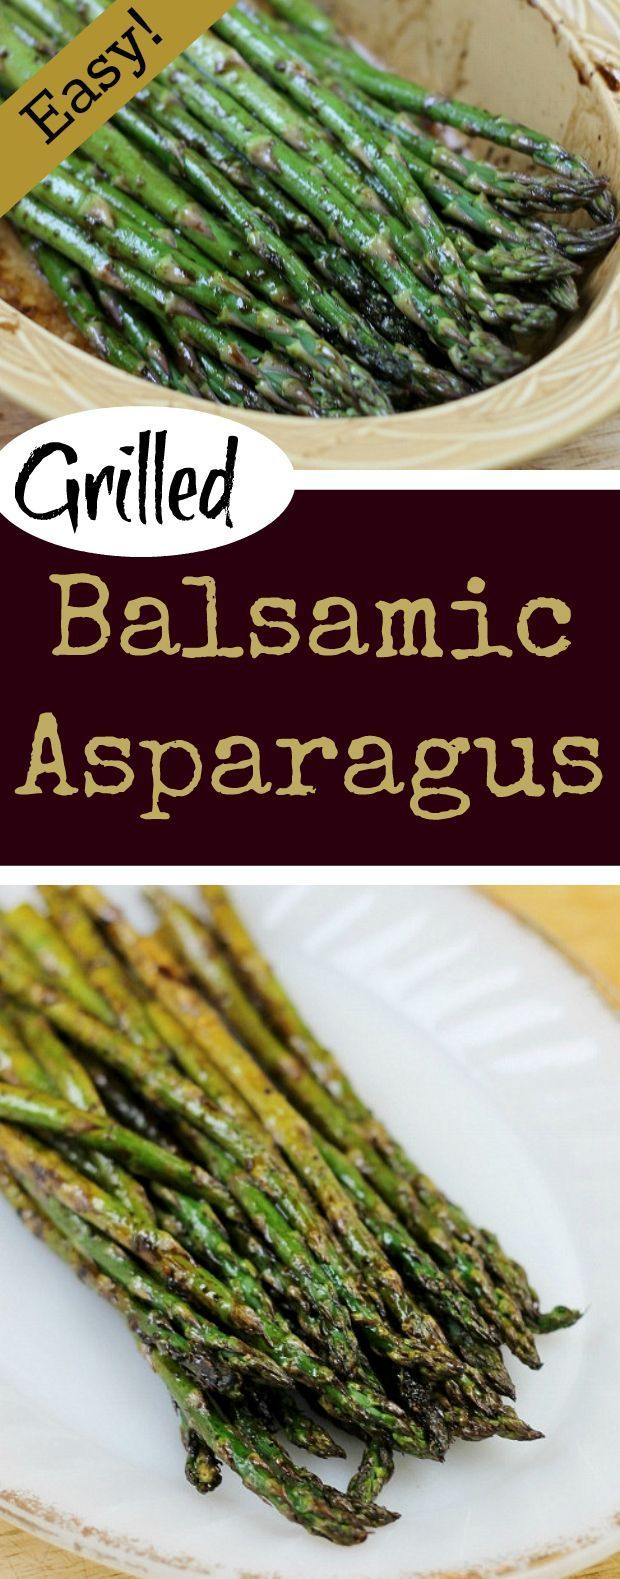 Grilled Balsamic Asparagus an easy recipe, that will turn asparagus haters into lovers.